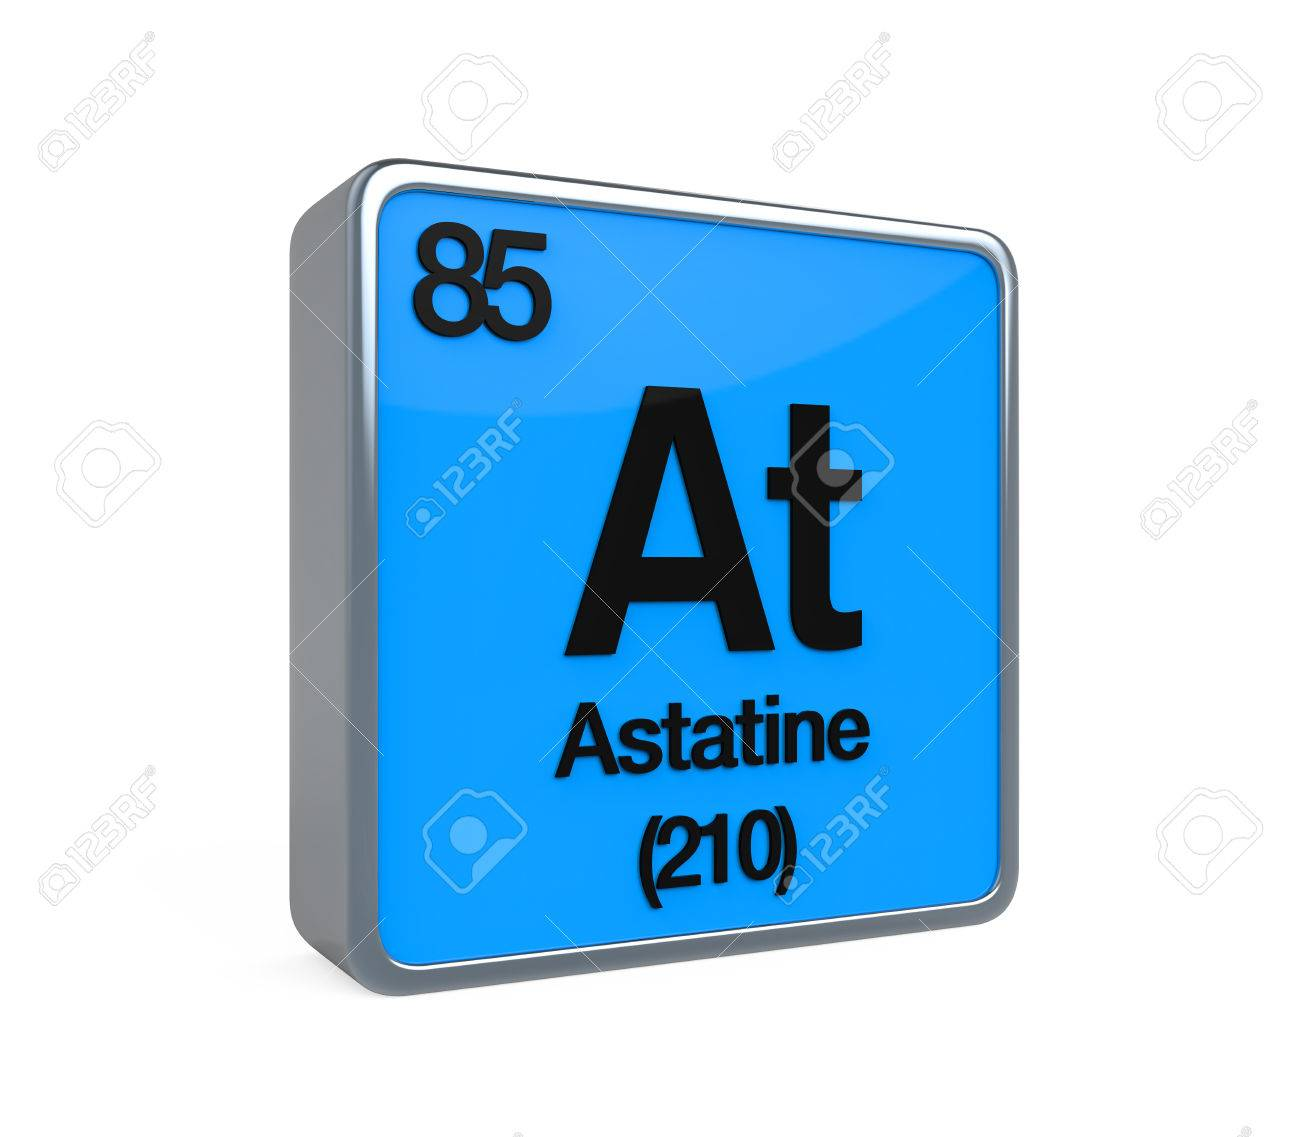 Astatine element periodic table stock photo picture and royalty astatine element periodic table stock photo 32898036 urtaz Gallery